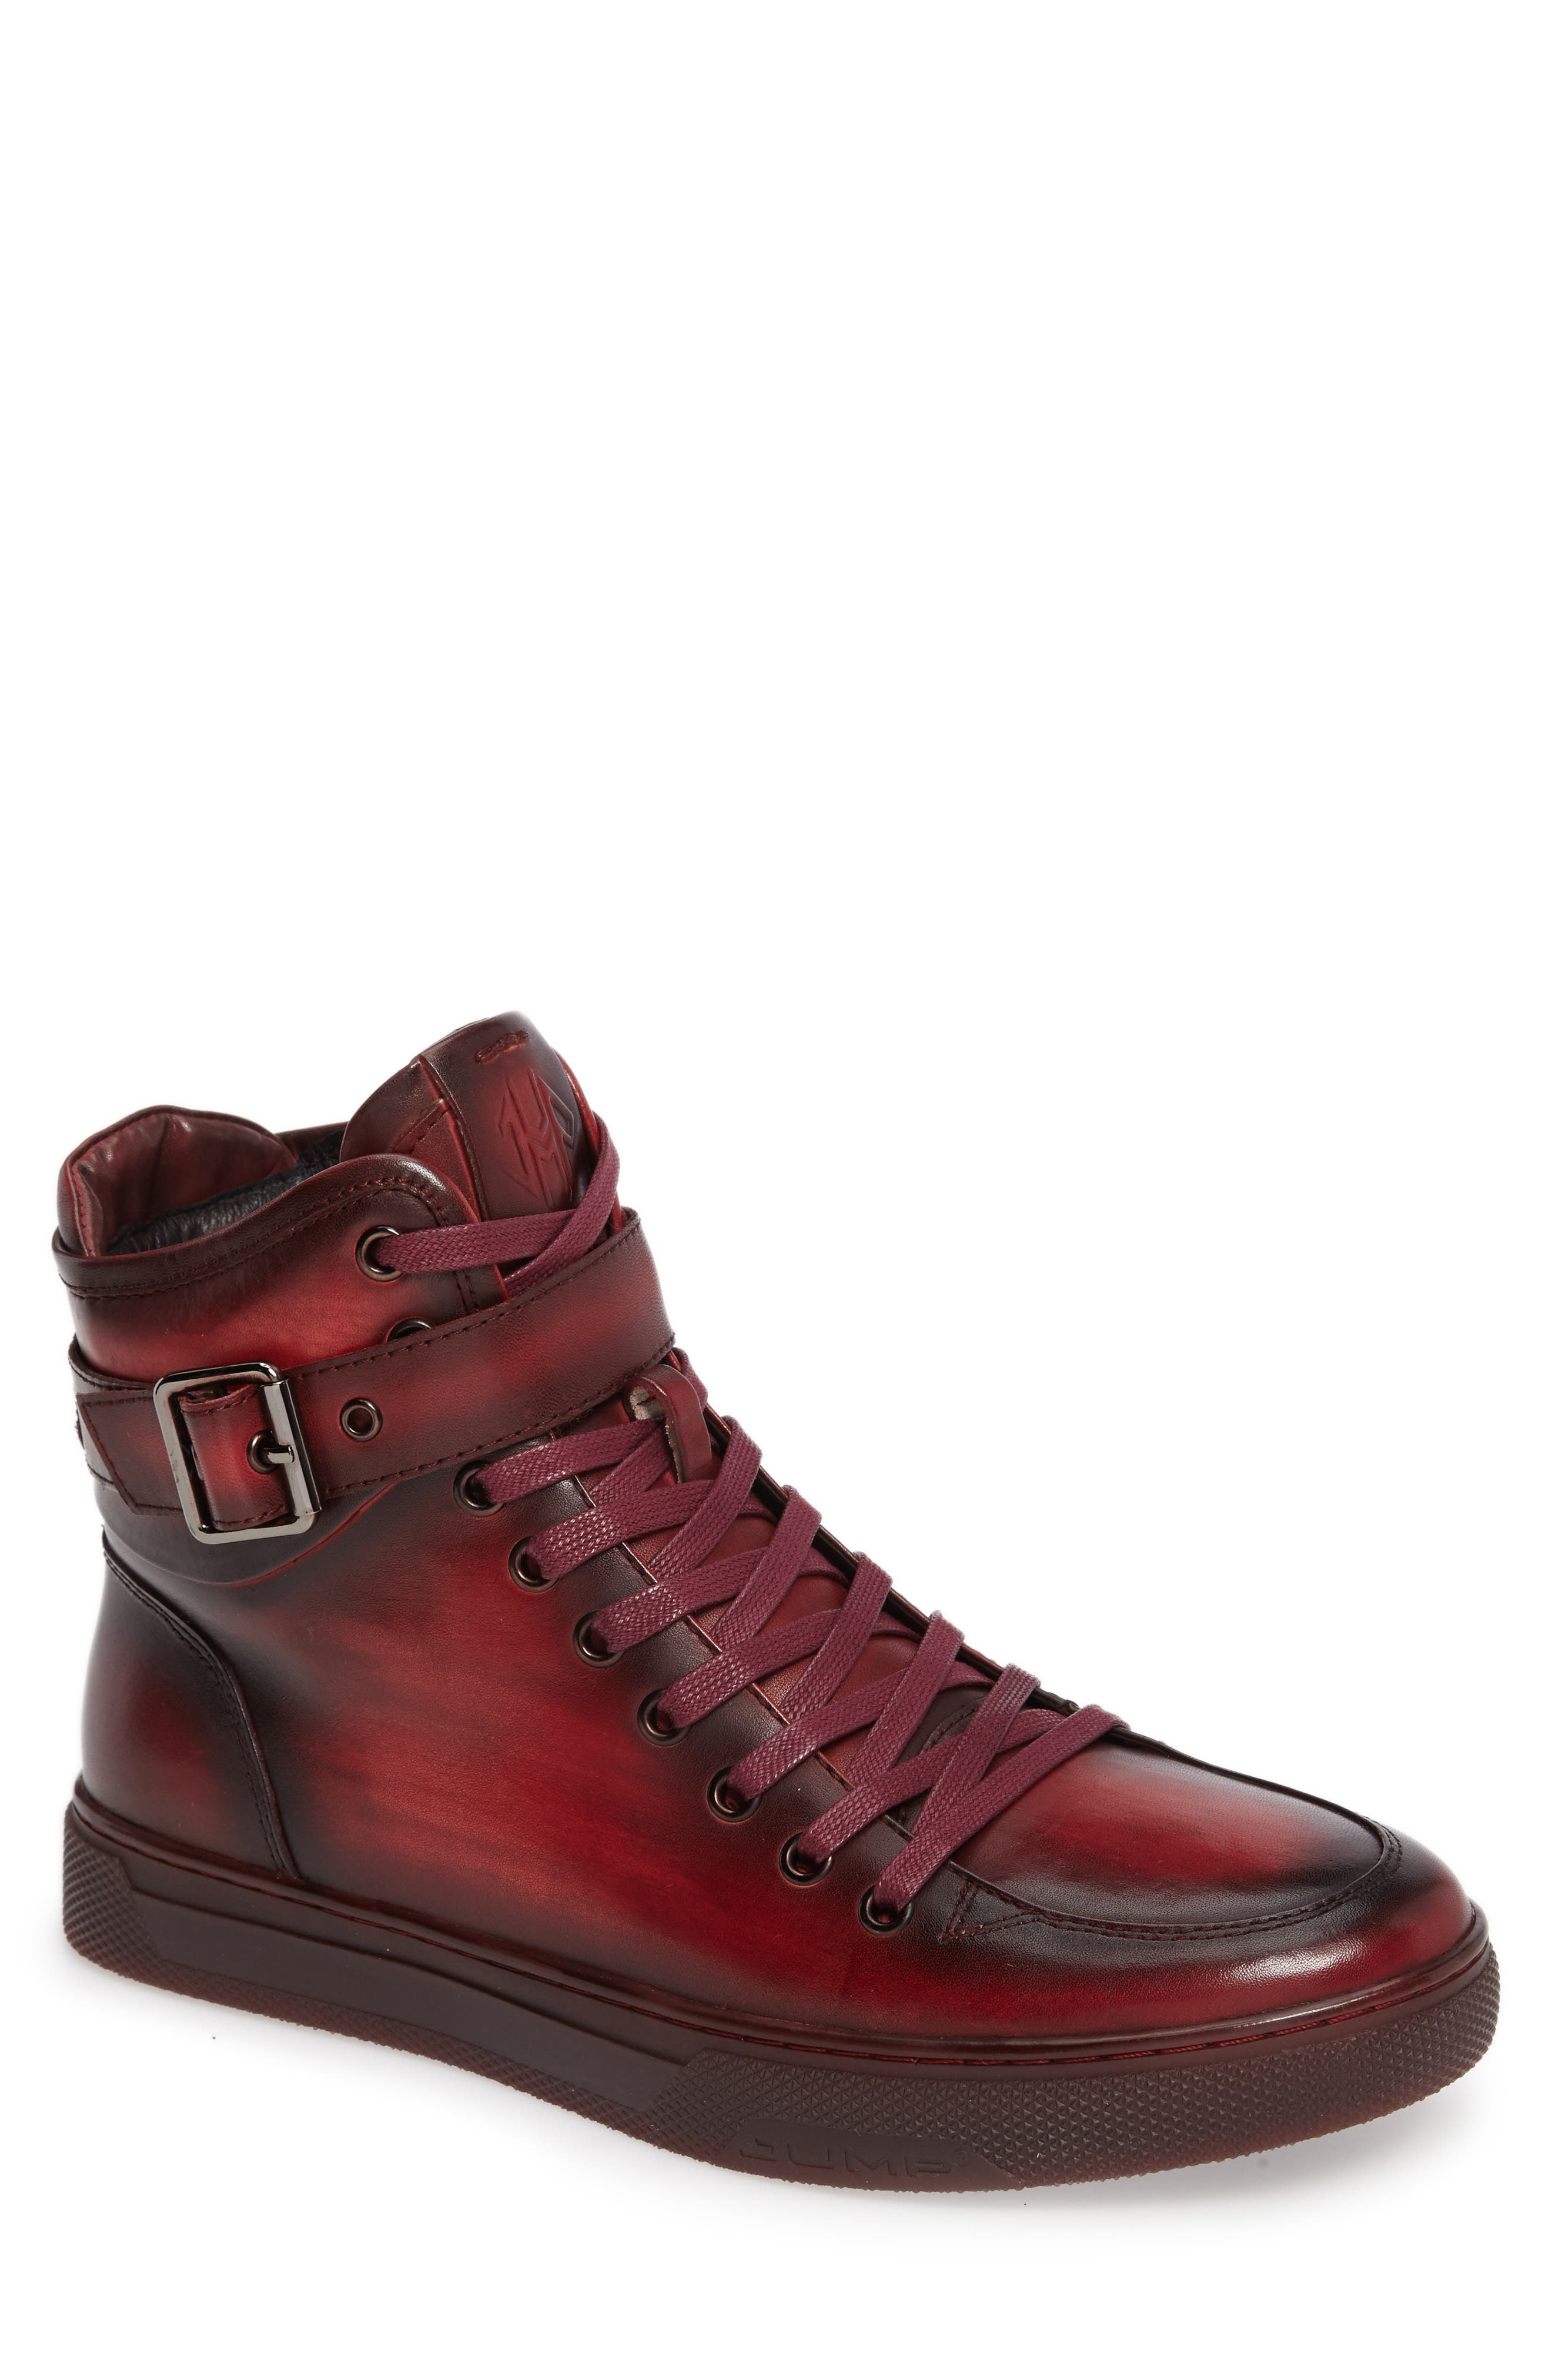 JUMP Sullivan High Top Sneaker, Main, color, RUBY